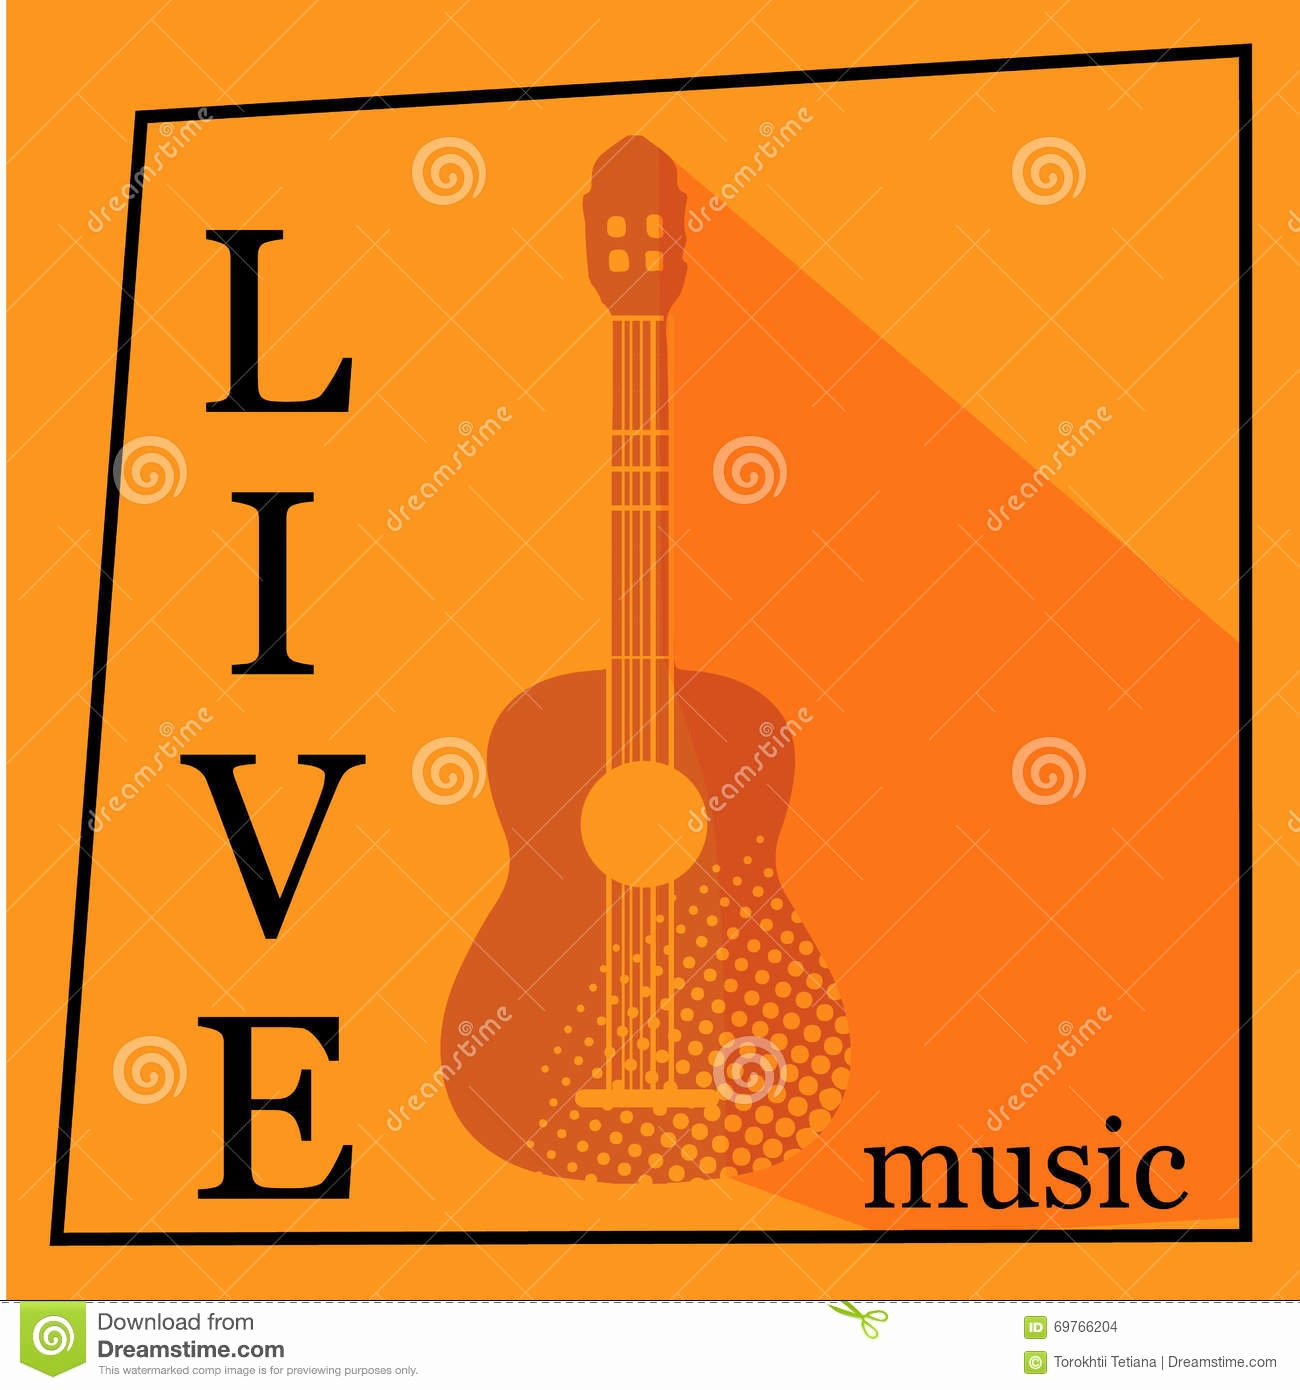 Free Music Poster Templates New Live Music Vector Poster Template Stock Image